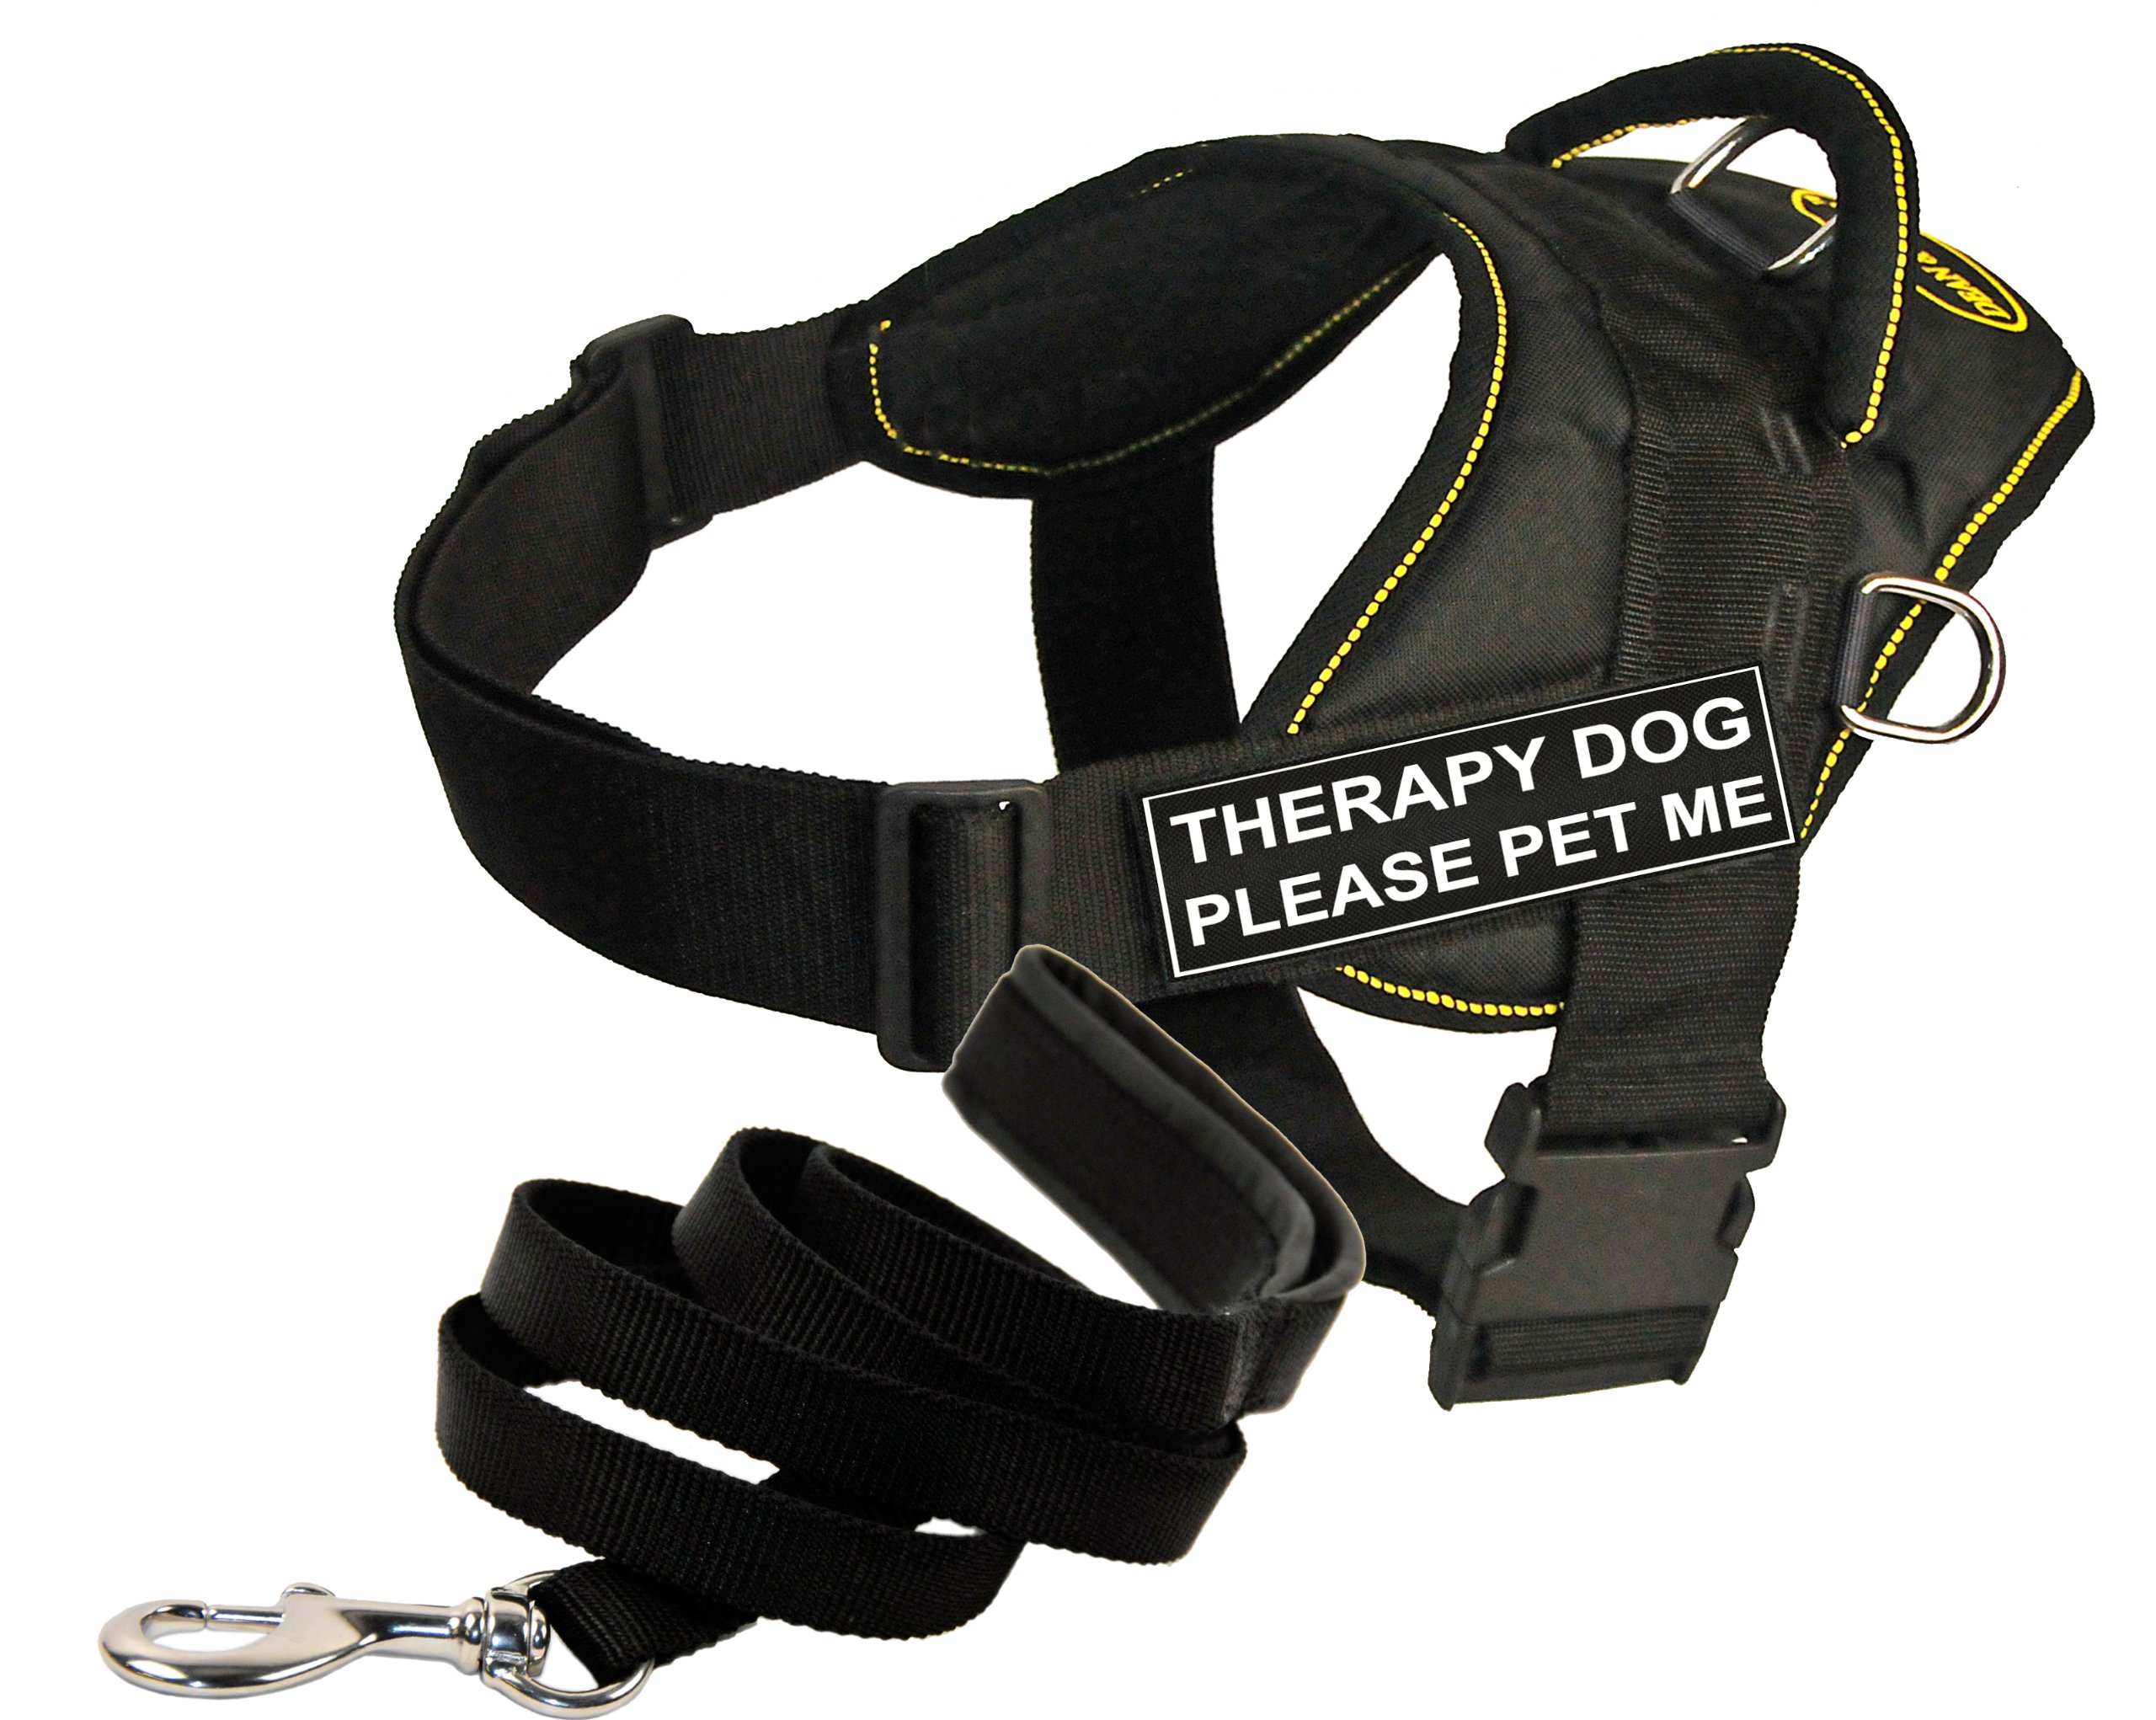 Dean and Tyler Bundle - ''DT Fun Works'' Harness, Therapy Dog Please Pet Me, Yellow Trim, Large + ''Padded Puppy'' Leash, 6 FT Stainless Snap - Black by Dean & Tyler (Image #1)